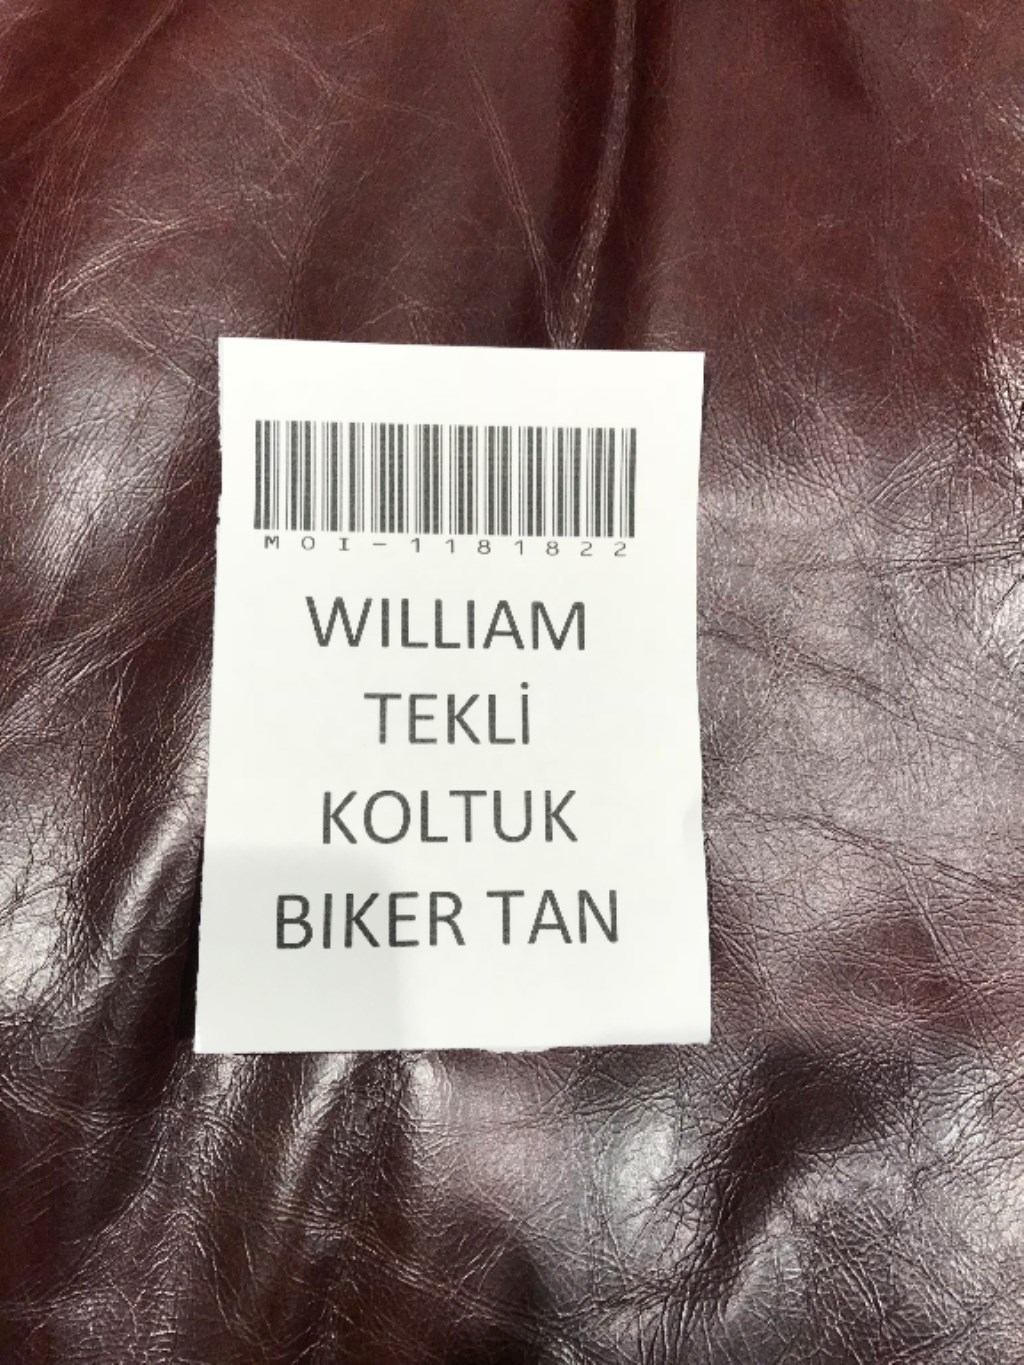 WILLIAM TEKLİ KOLTUK BIKER TAN